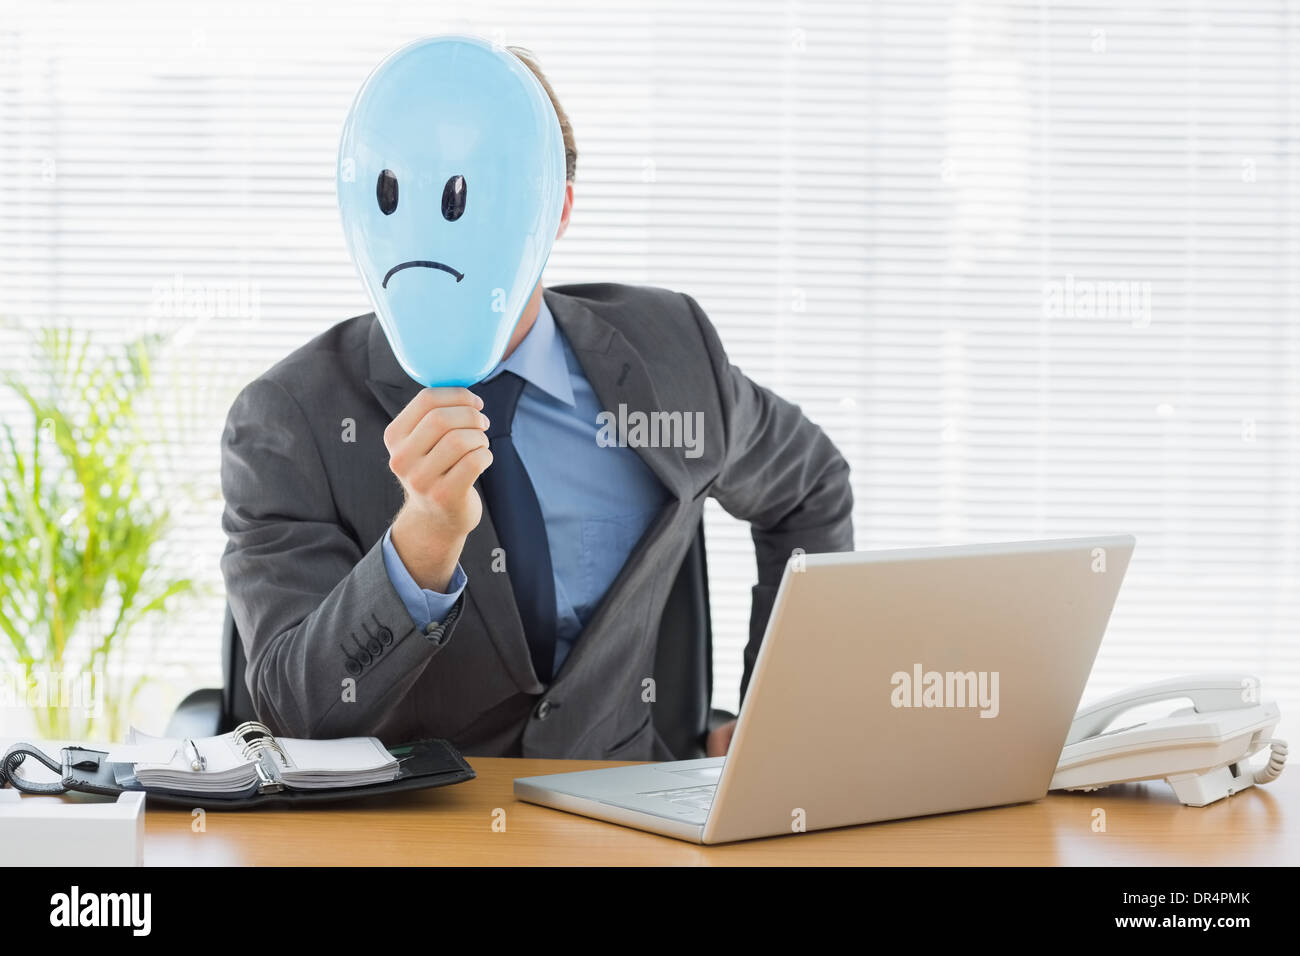 Businessman holding sad smiley faced balloon at office - Stock Image